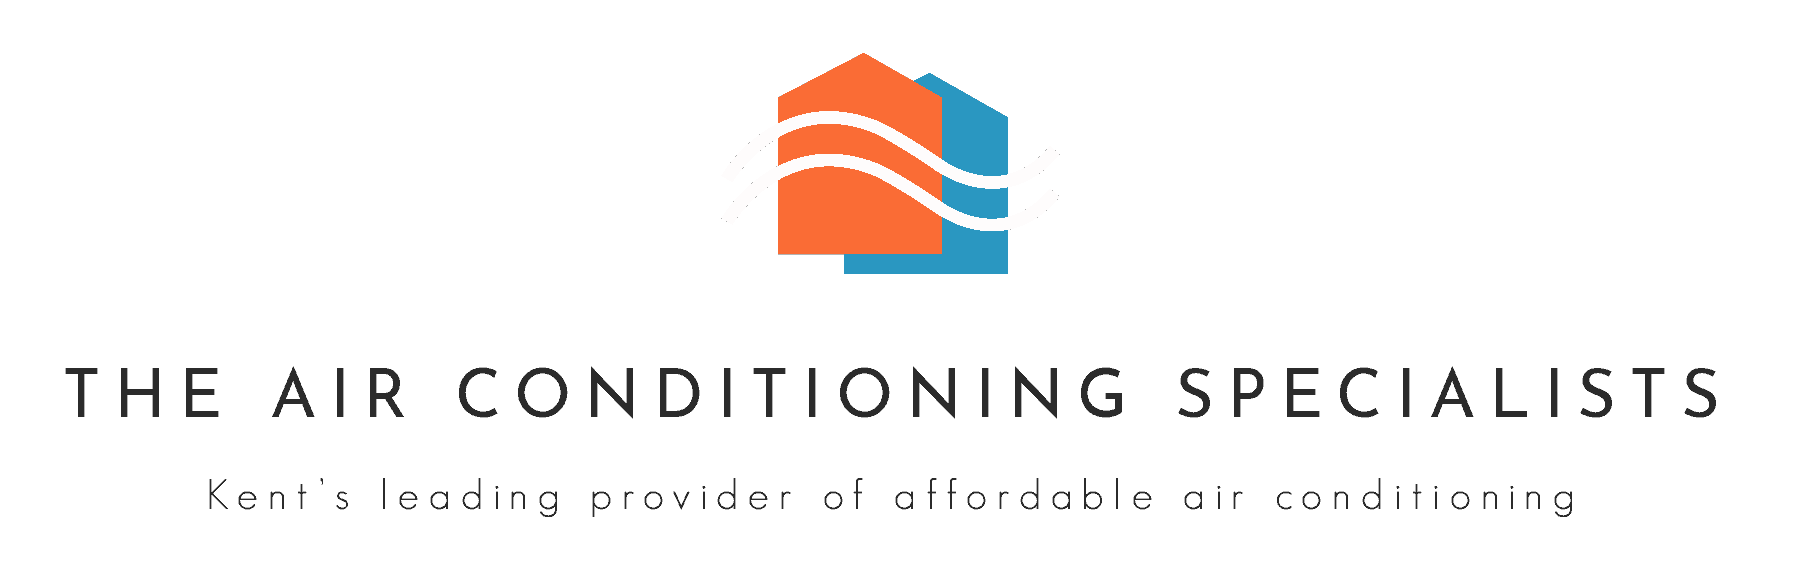 About installation of air conditioning About